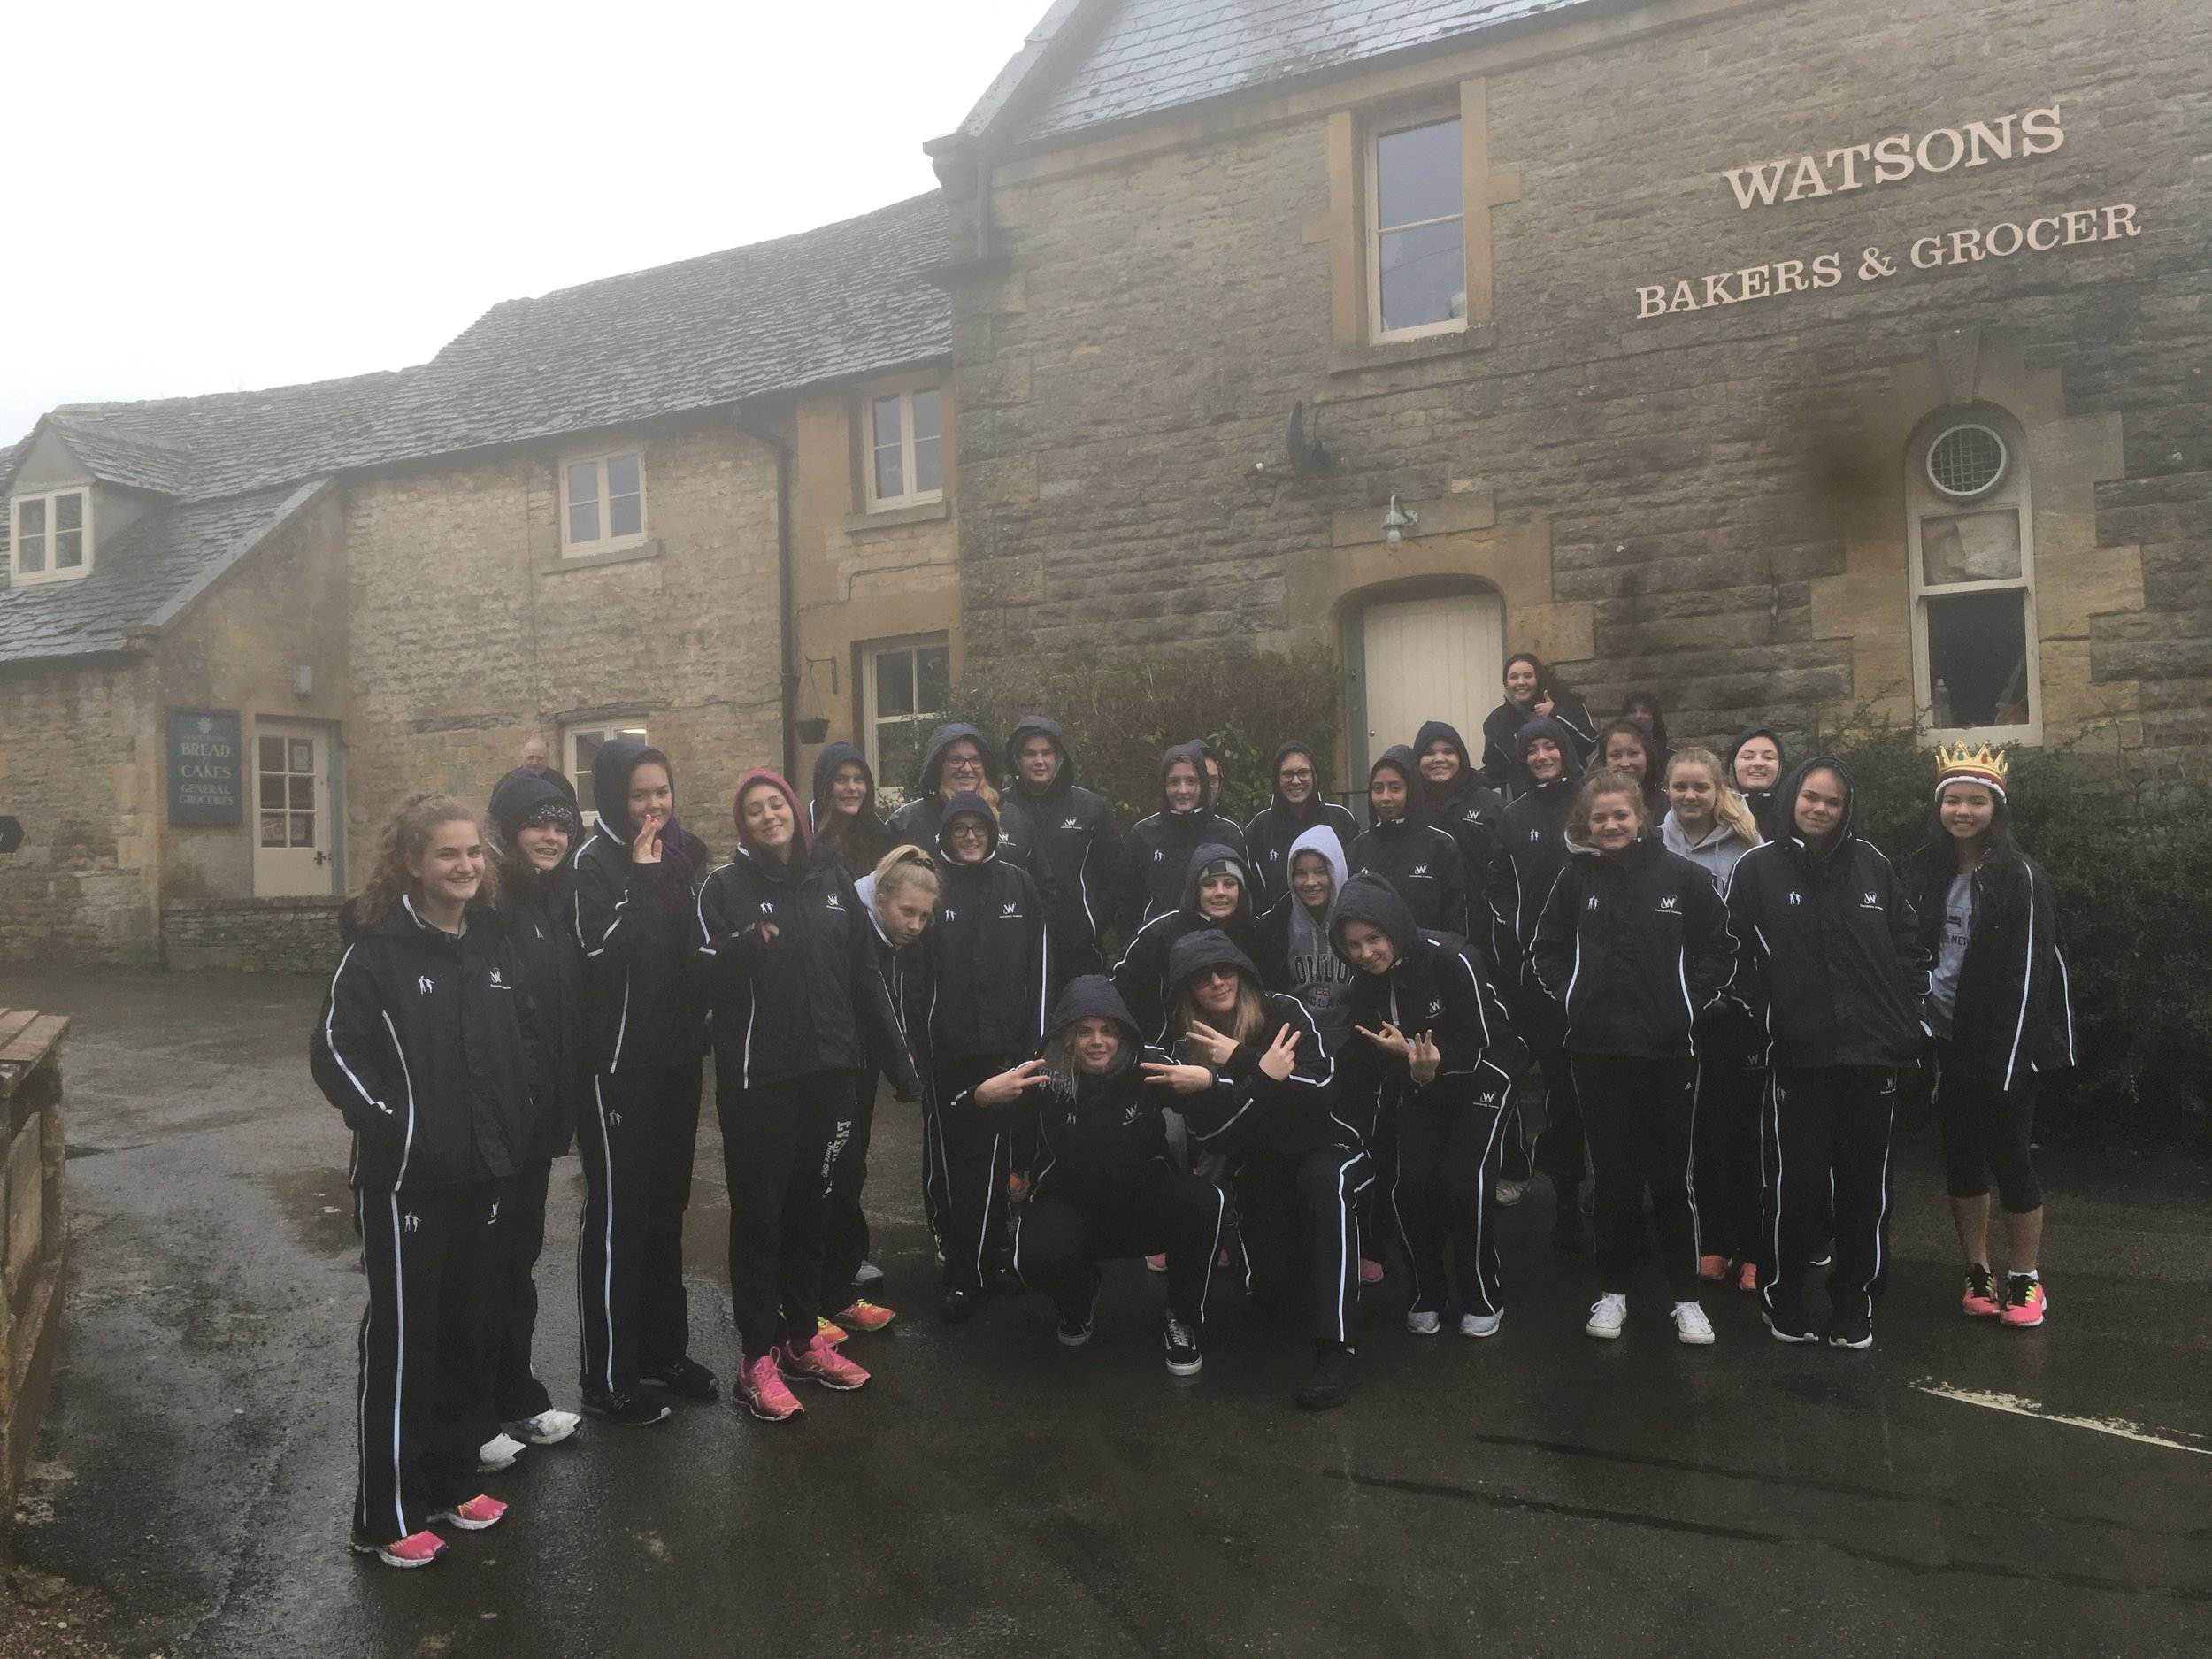 Braving the wet and chilly conditions on Day 5